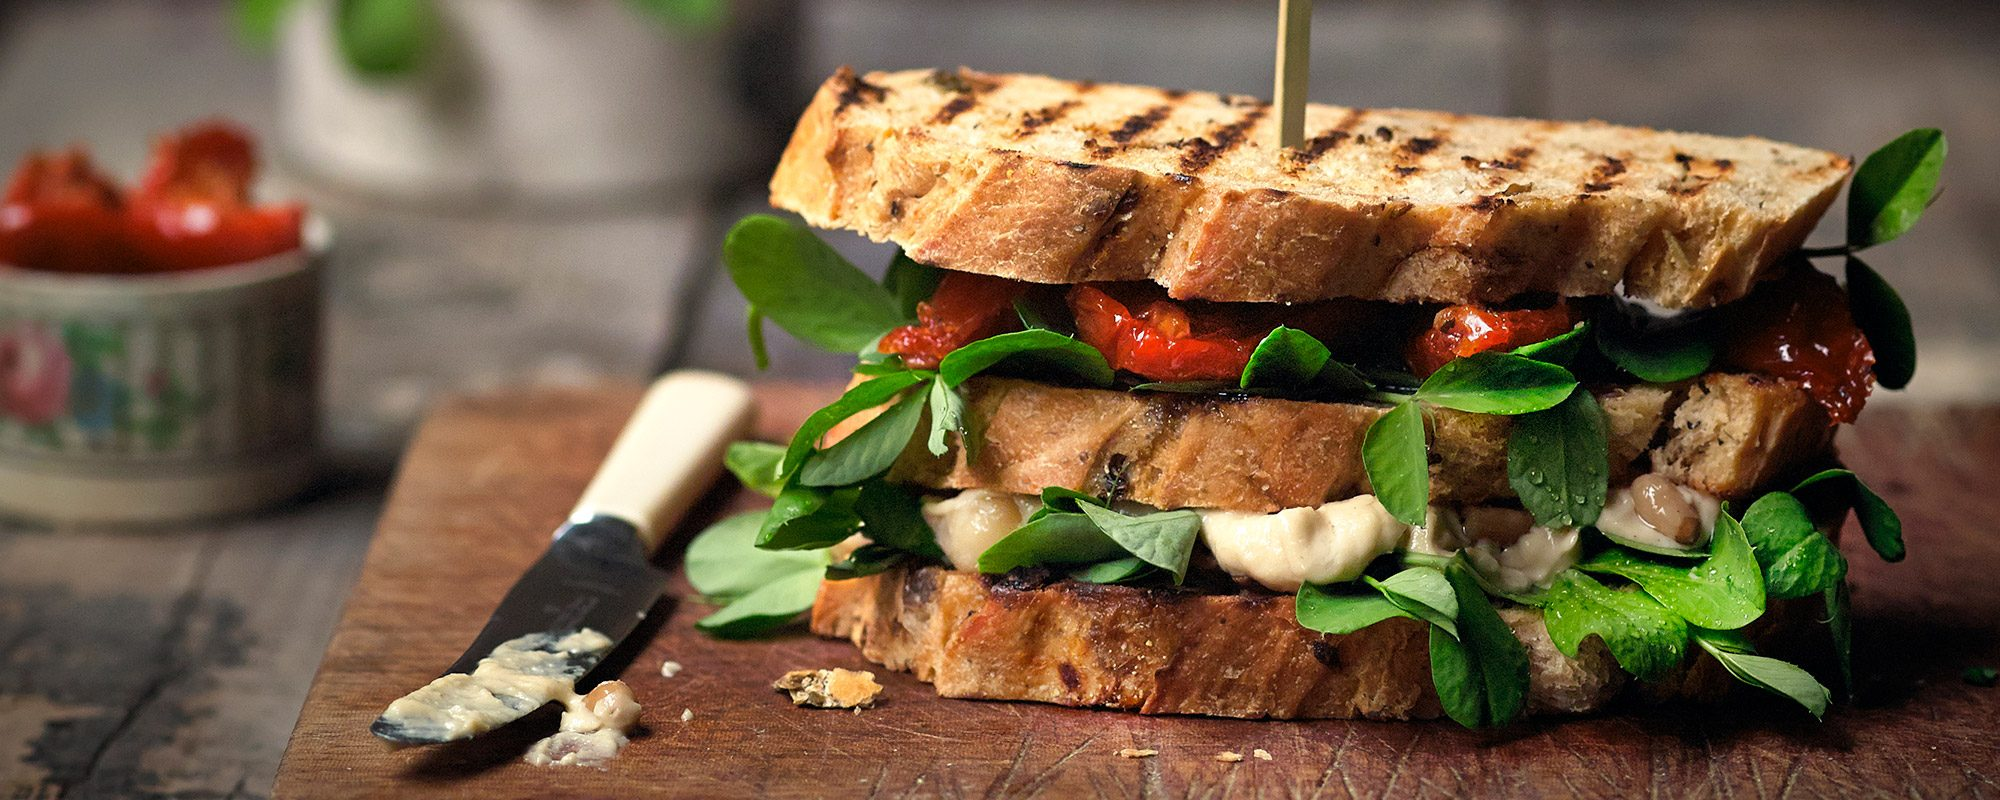 Sundried tomato, houmous and pea shoots sandwich